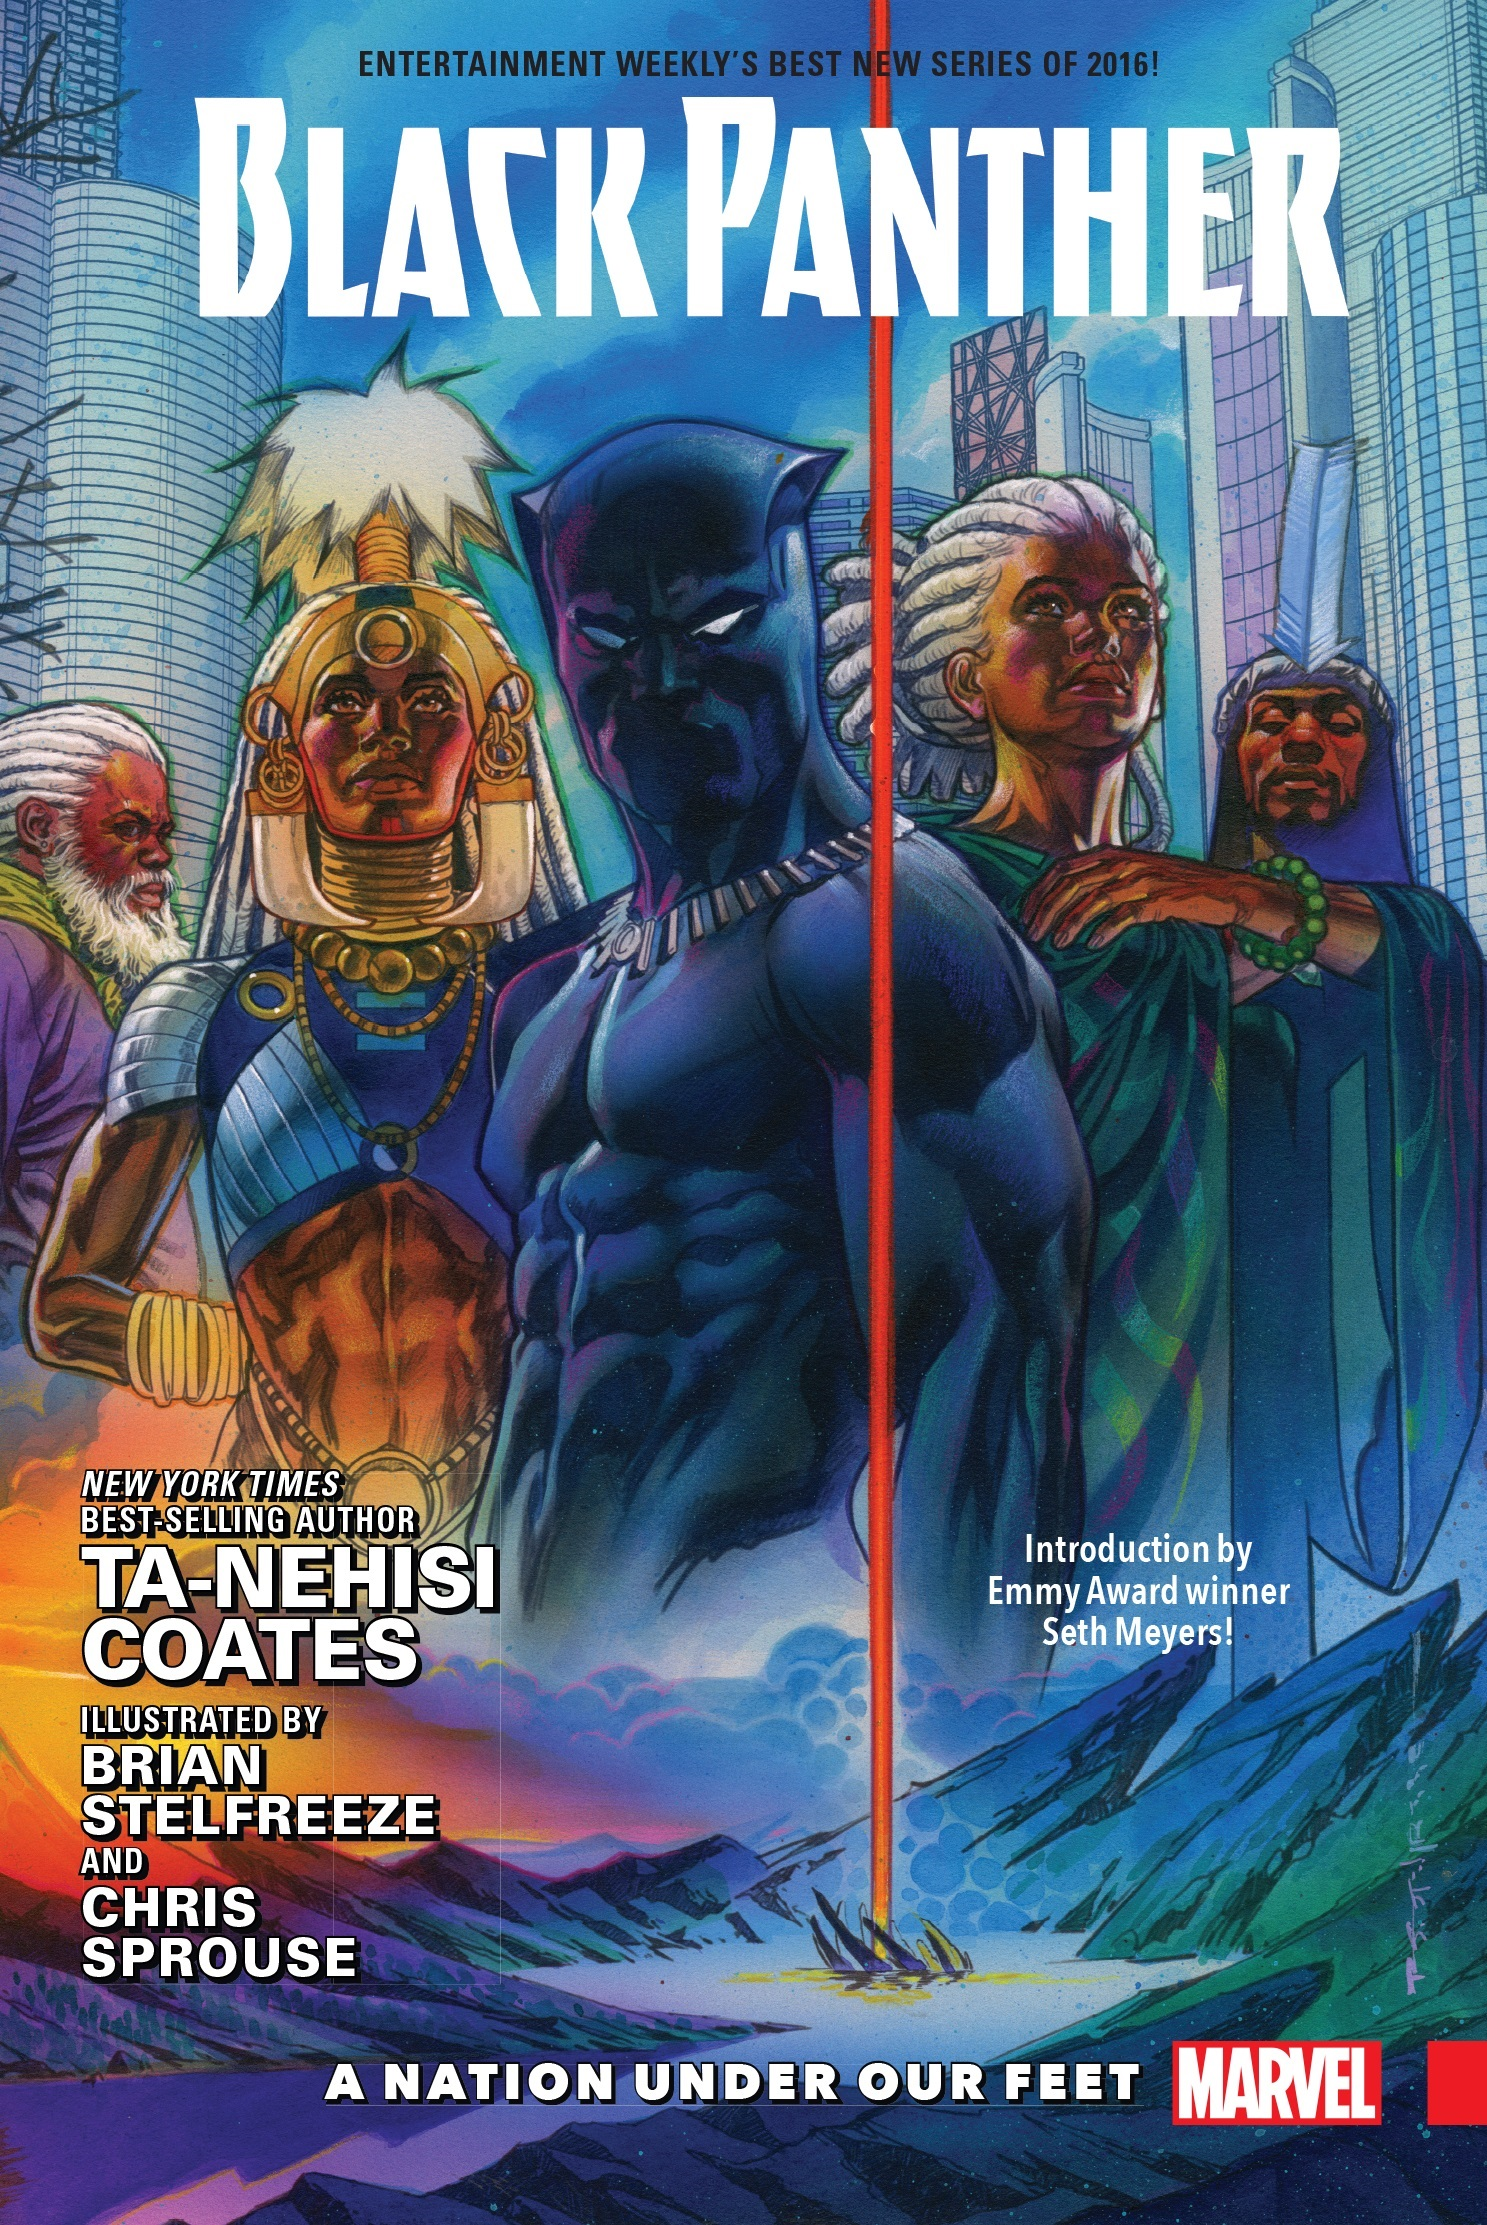 BLACK PANTHER VOL. 1: A NATION UNDER OUR FEET HC (Hardcover)